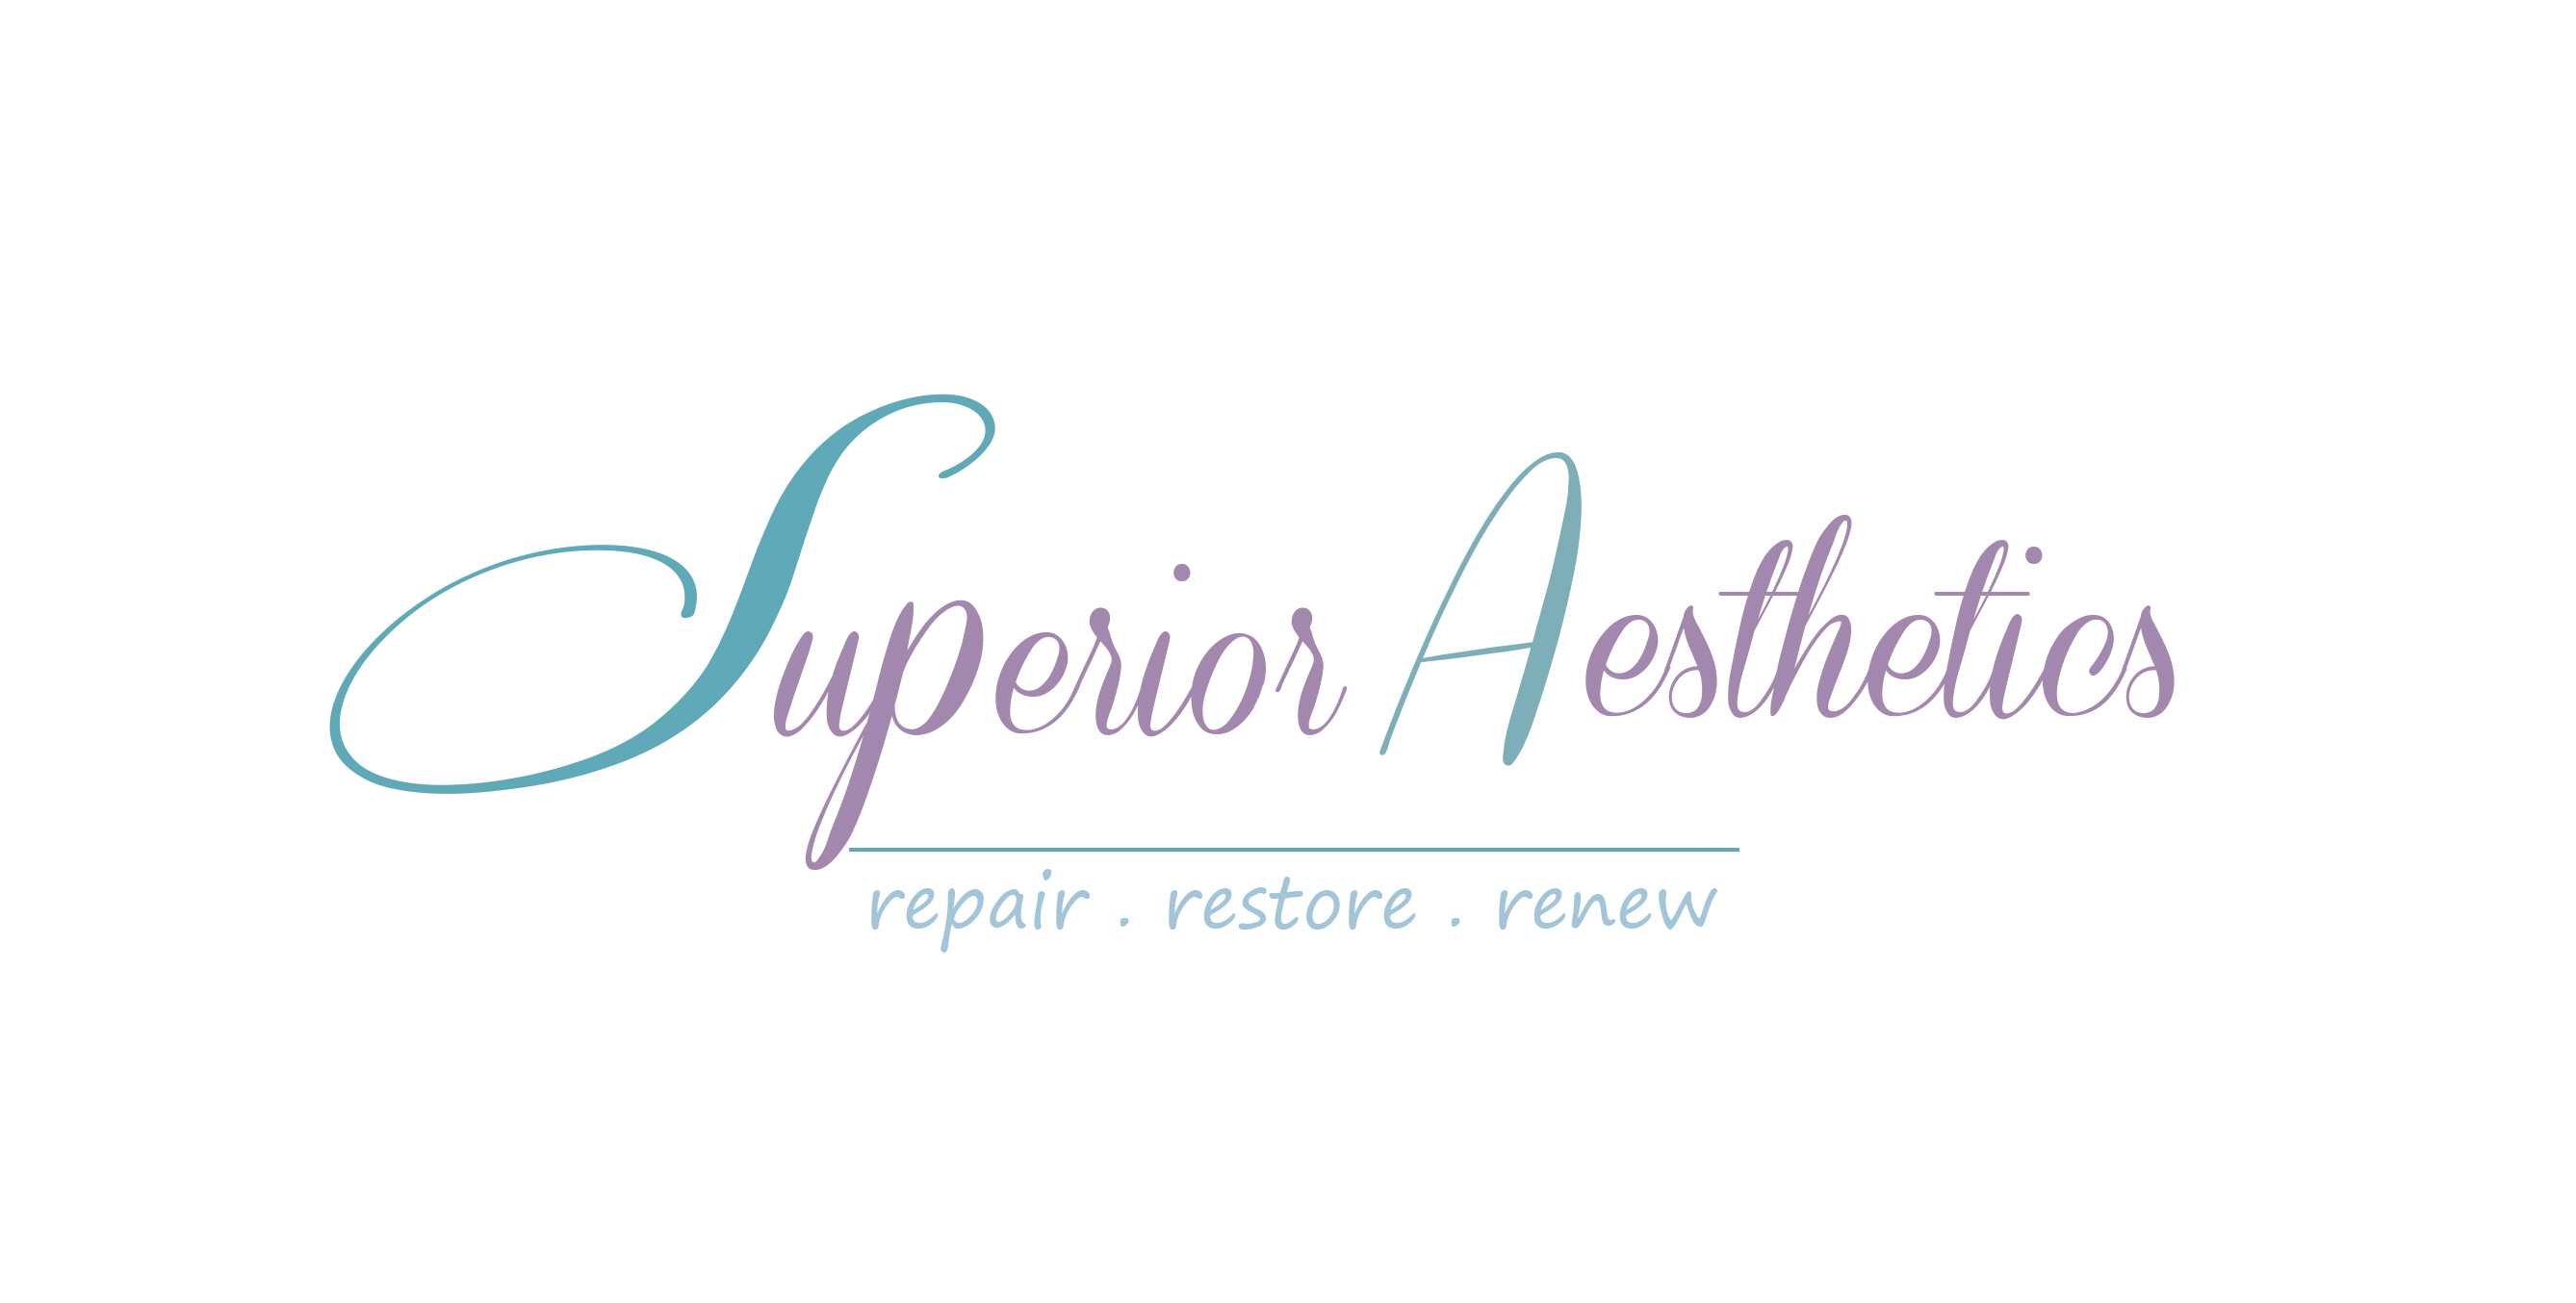 Superior Aesthetics  Repair-Restore-Renew